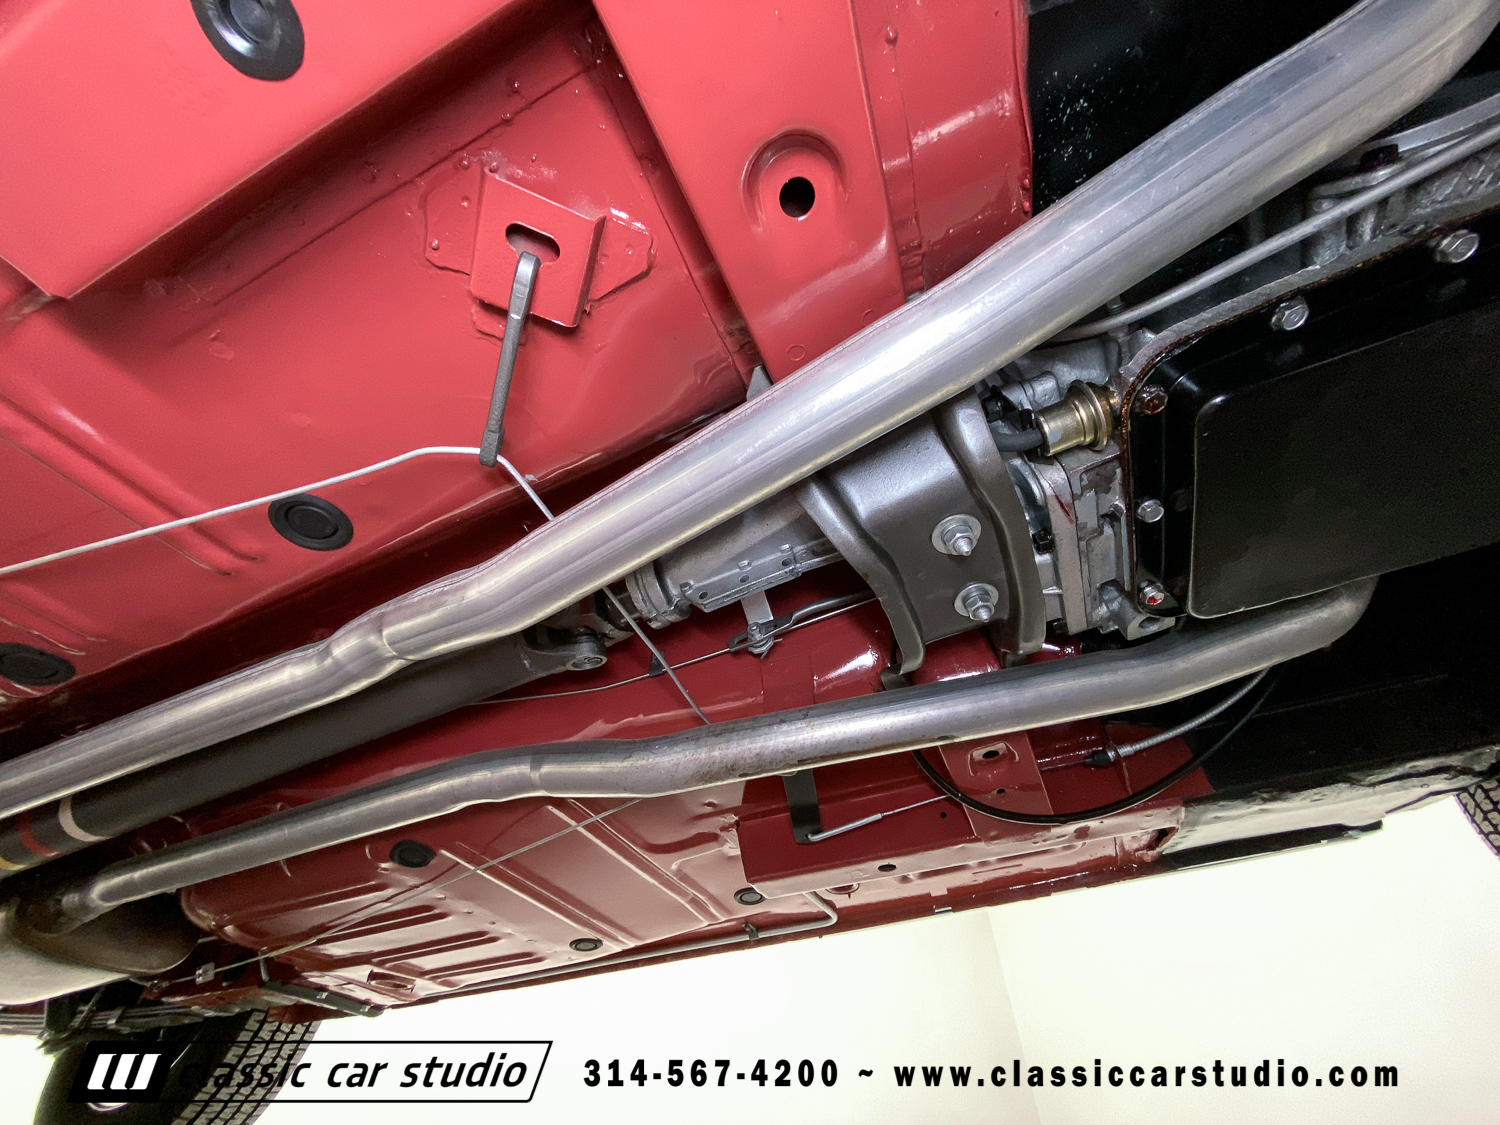 1968 Mustang Undercarriage